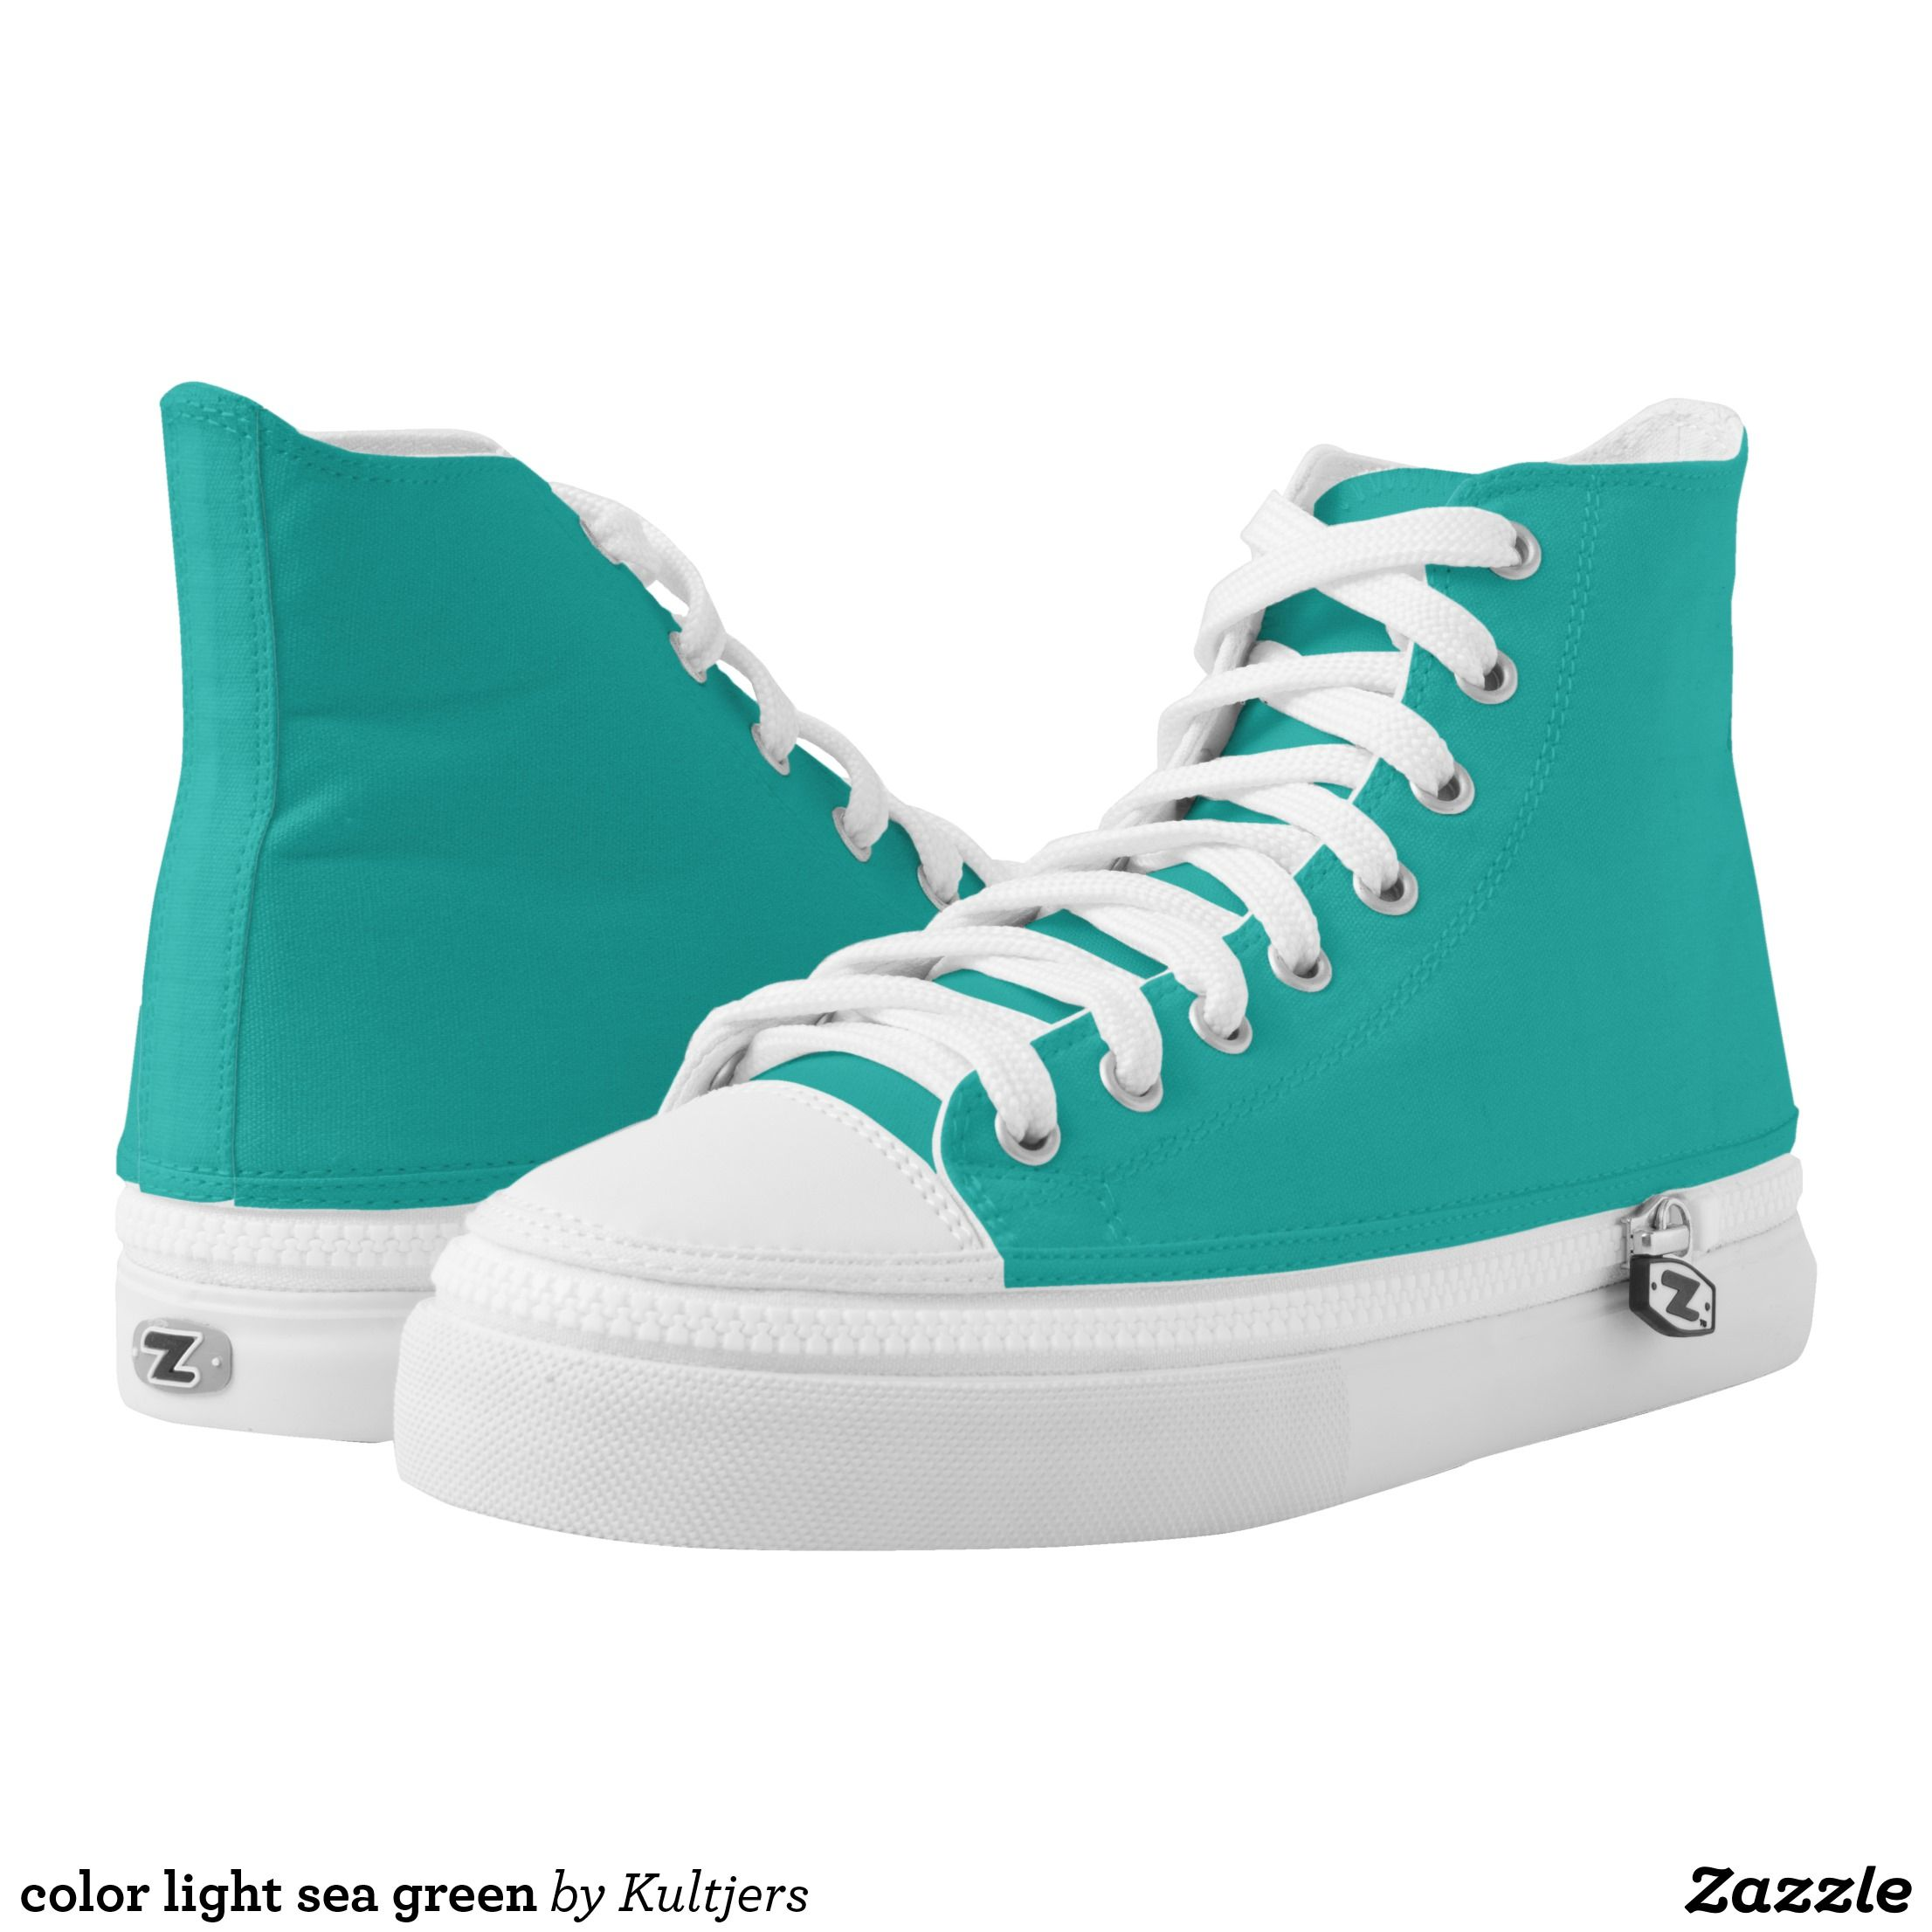 color light sea green High-Top sneakers